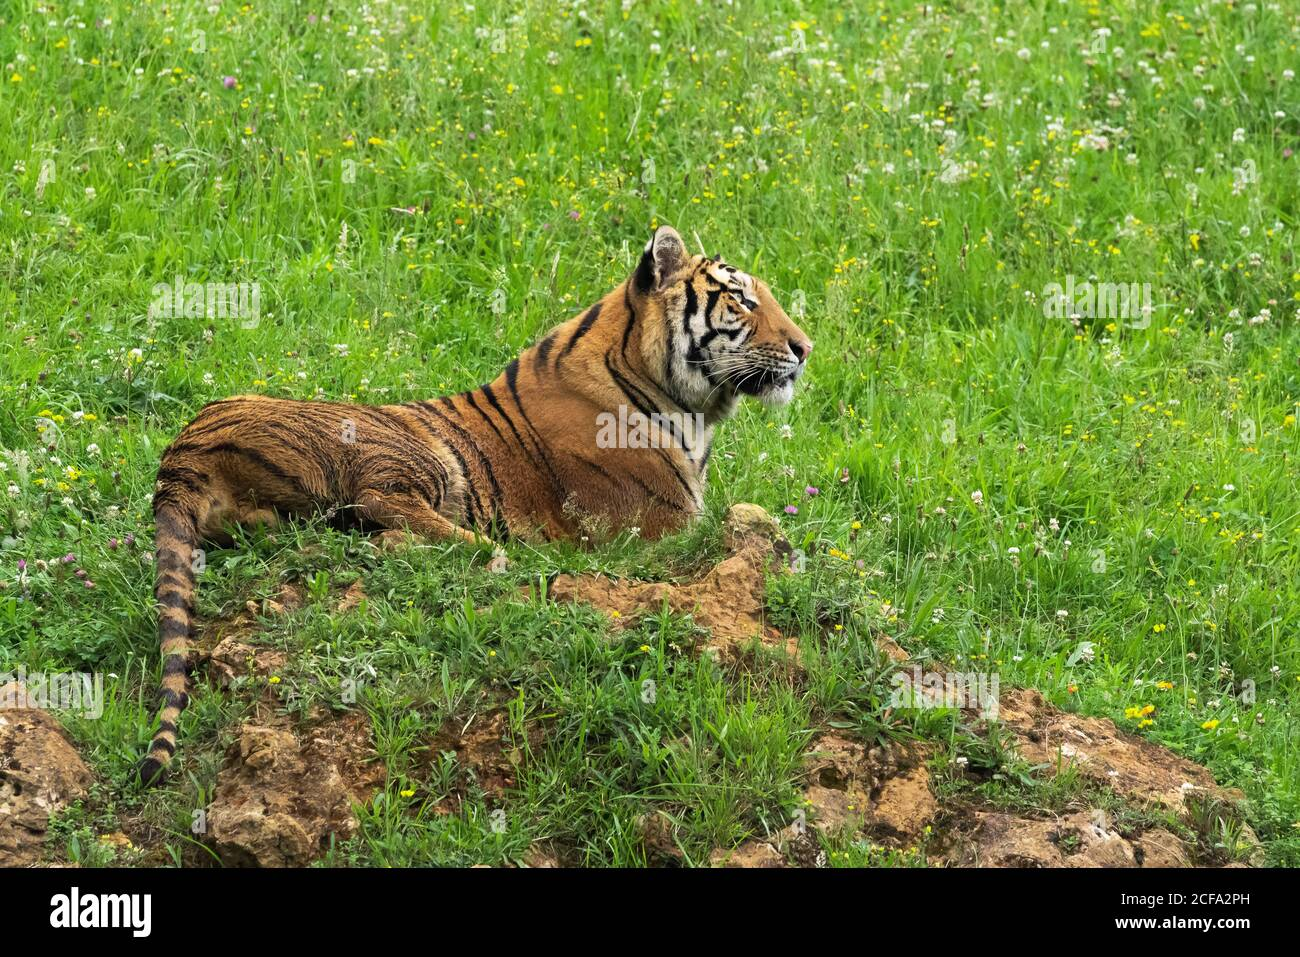 Huge tiger lying on grass in colorful jungle near trees with small leaves in sunlight Stock Photo